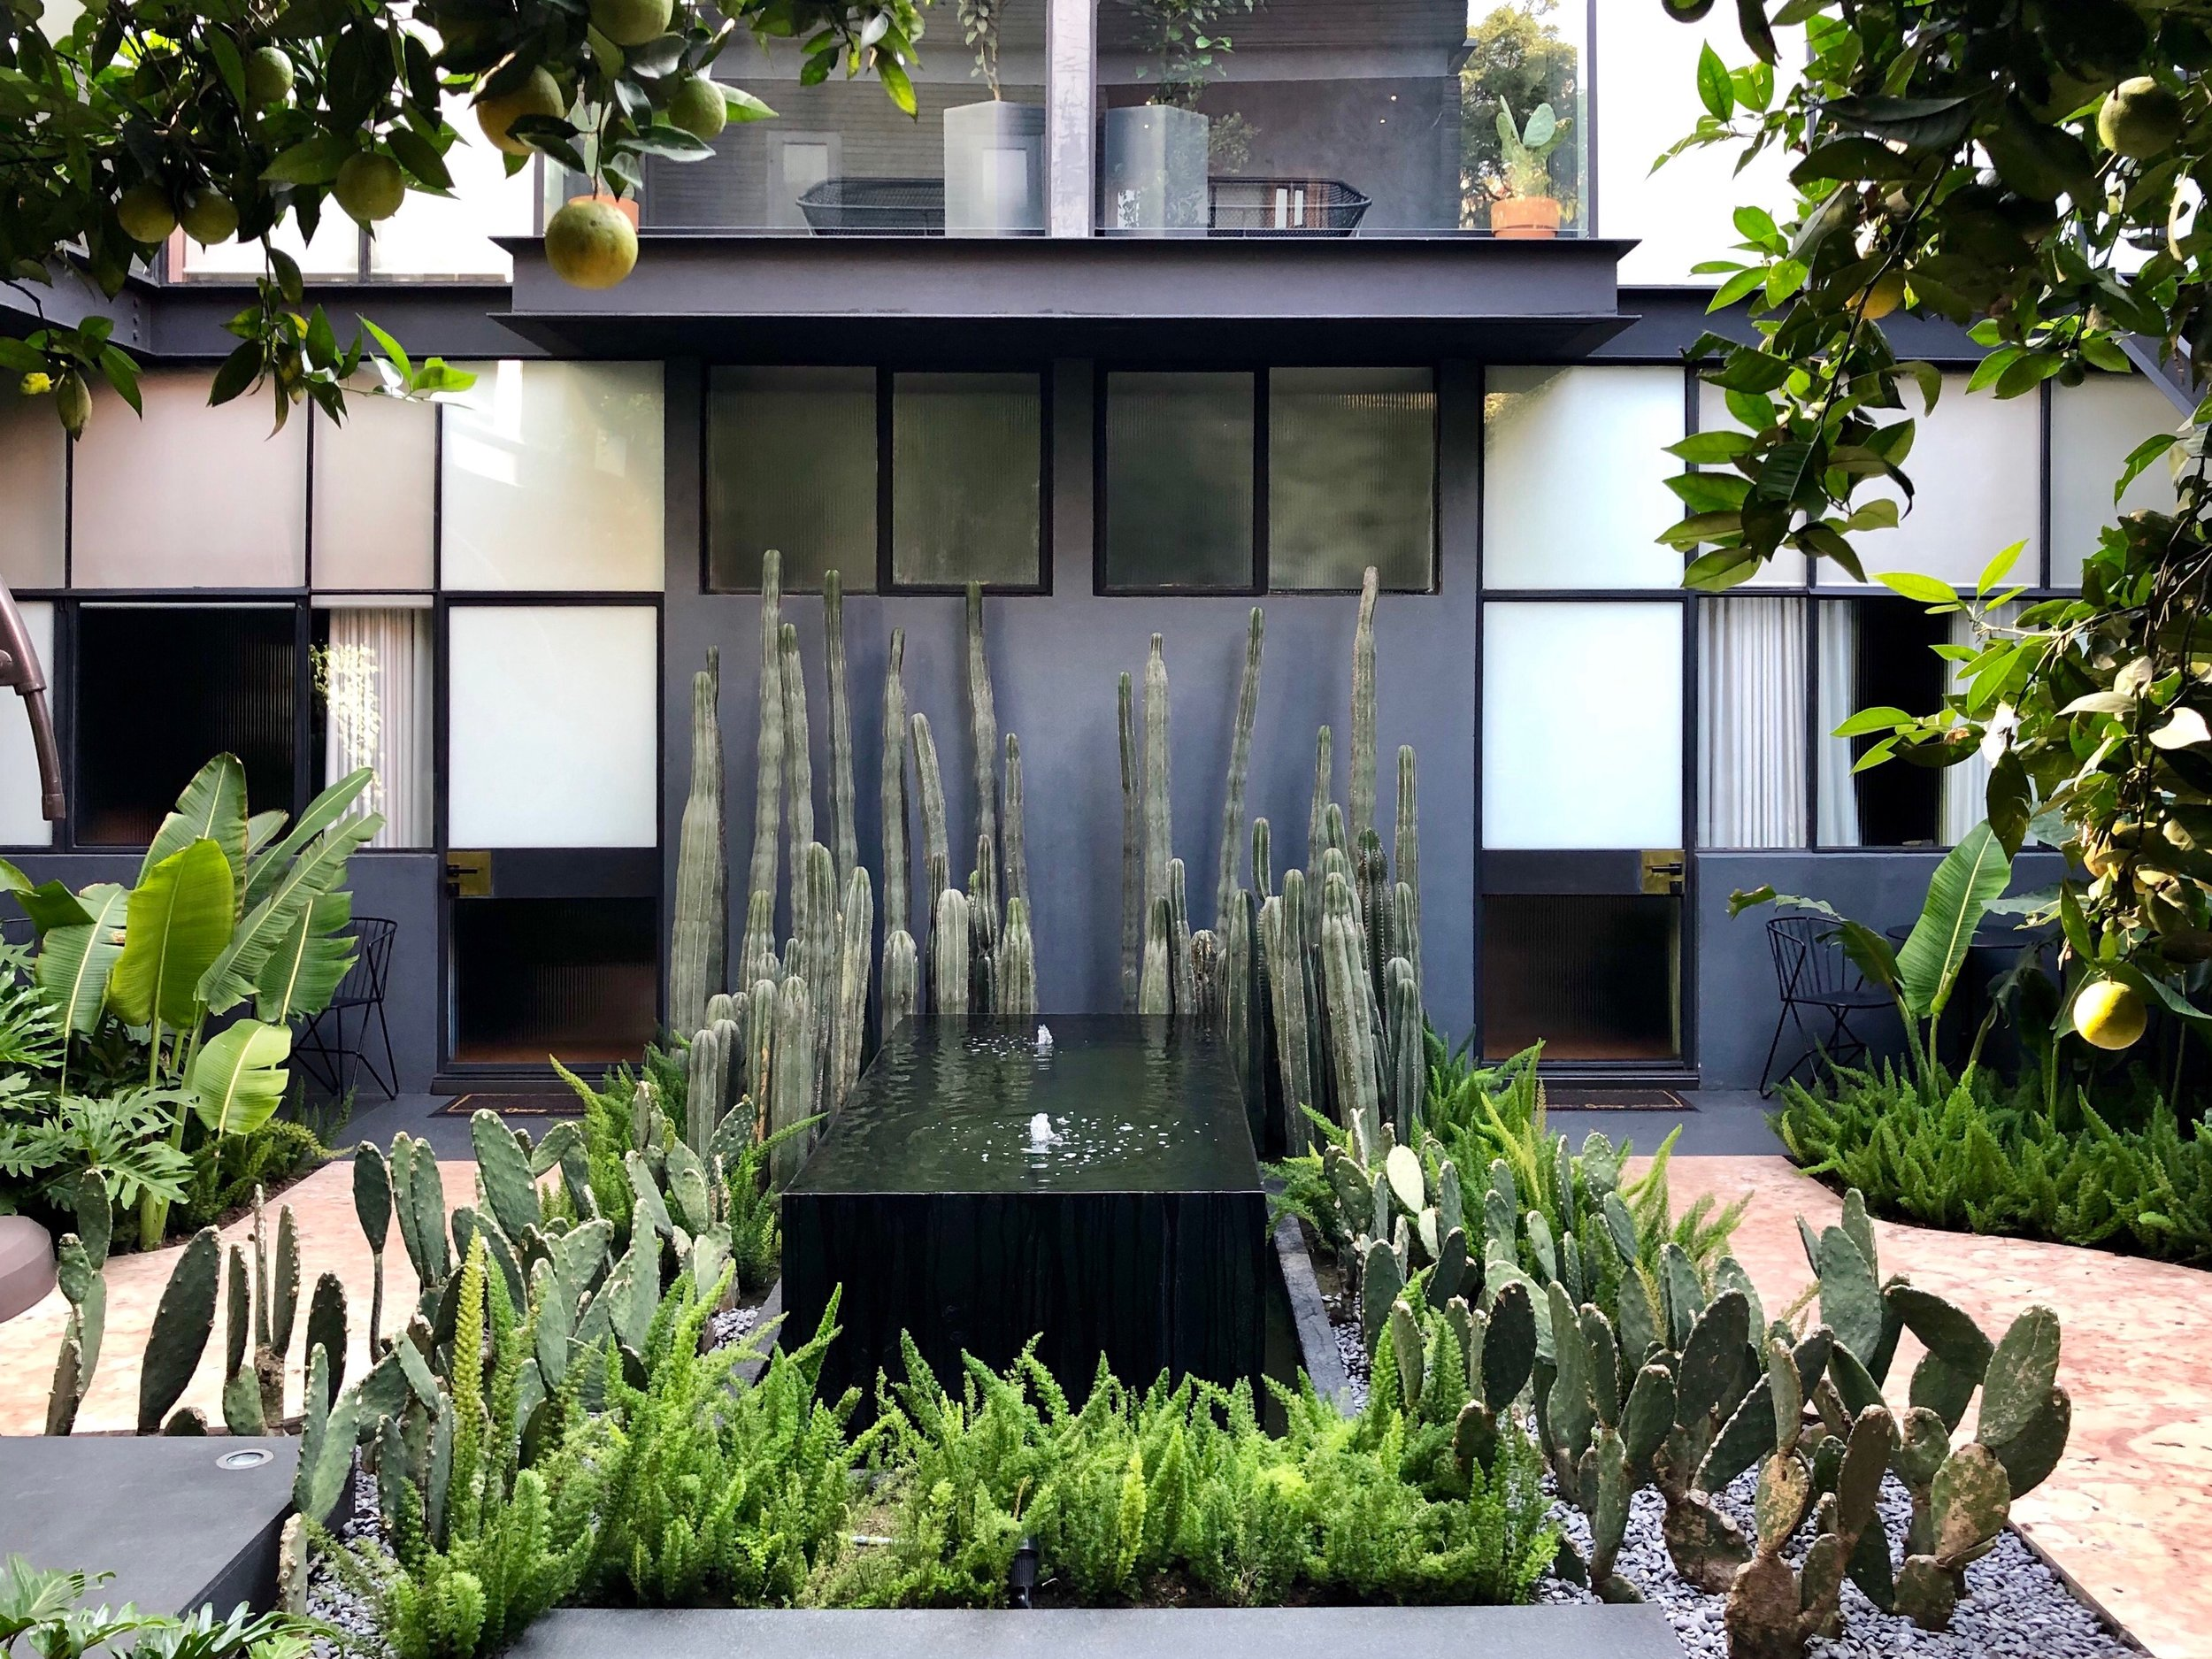 The back courtyard of Ignacia, with its cactus garden and fountain, lies between the old house and the new suites